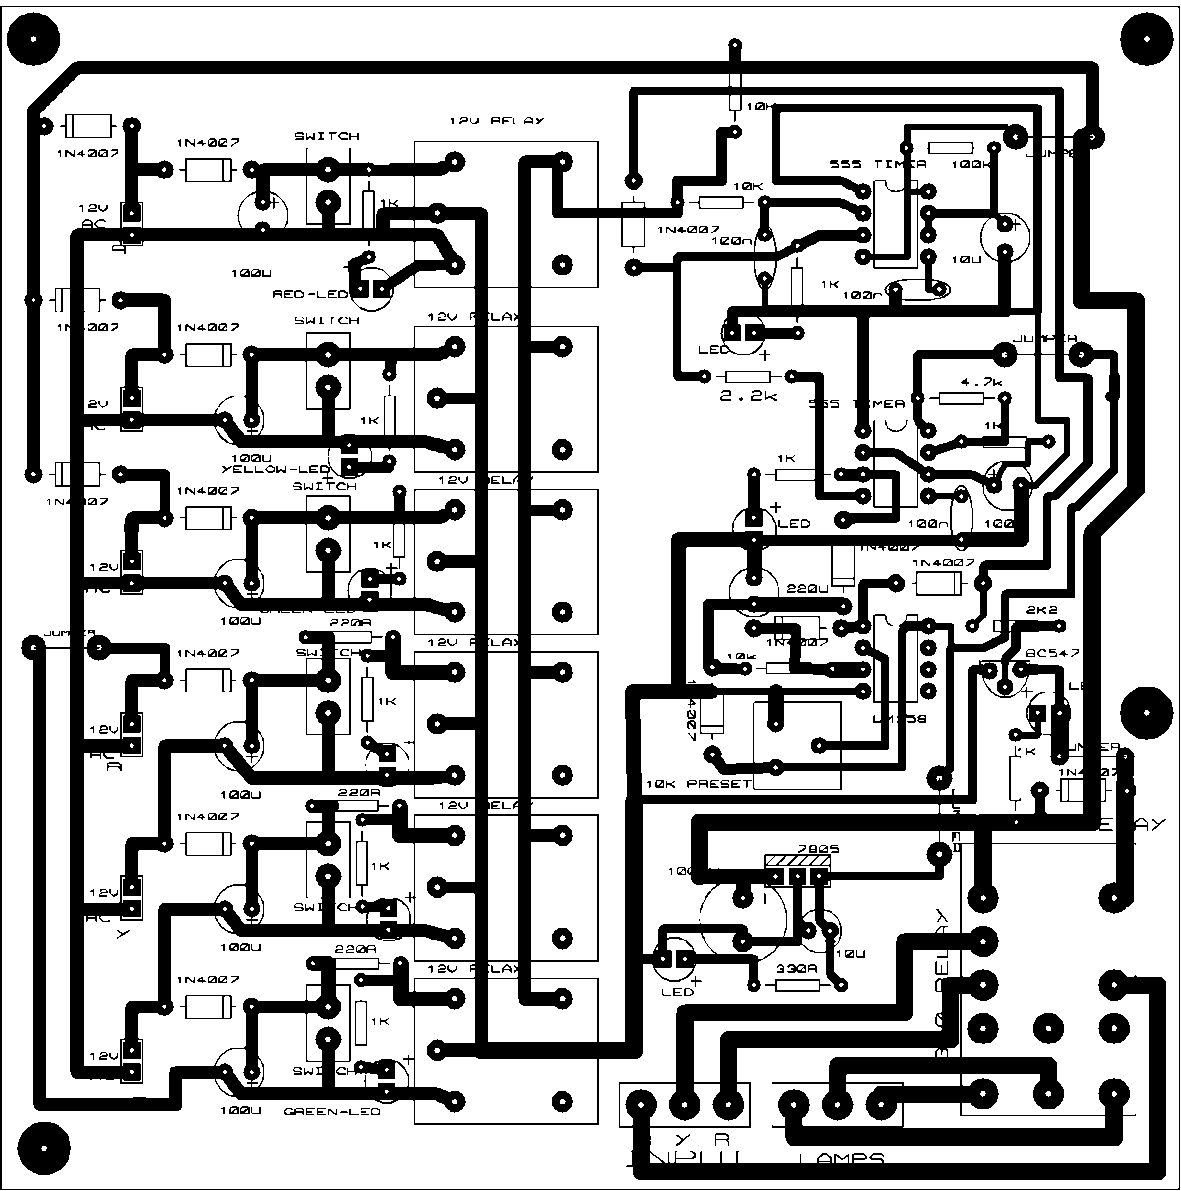 Ihsan Punya Fyp July 2015 555 Bistable Schematic 34 Pcb Layout